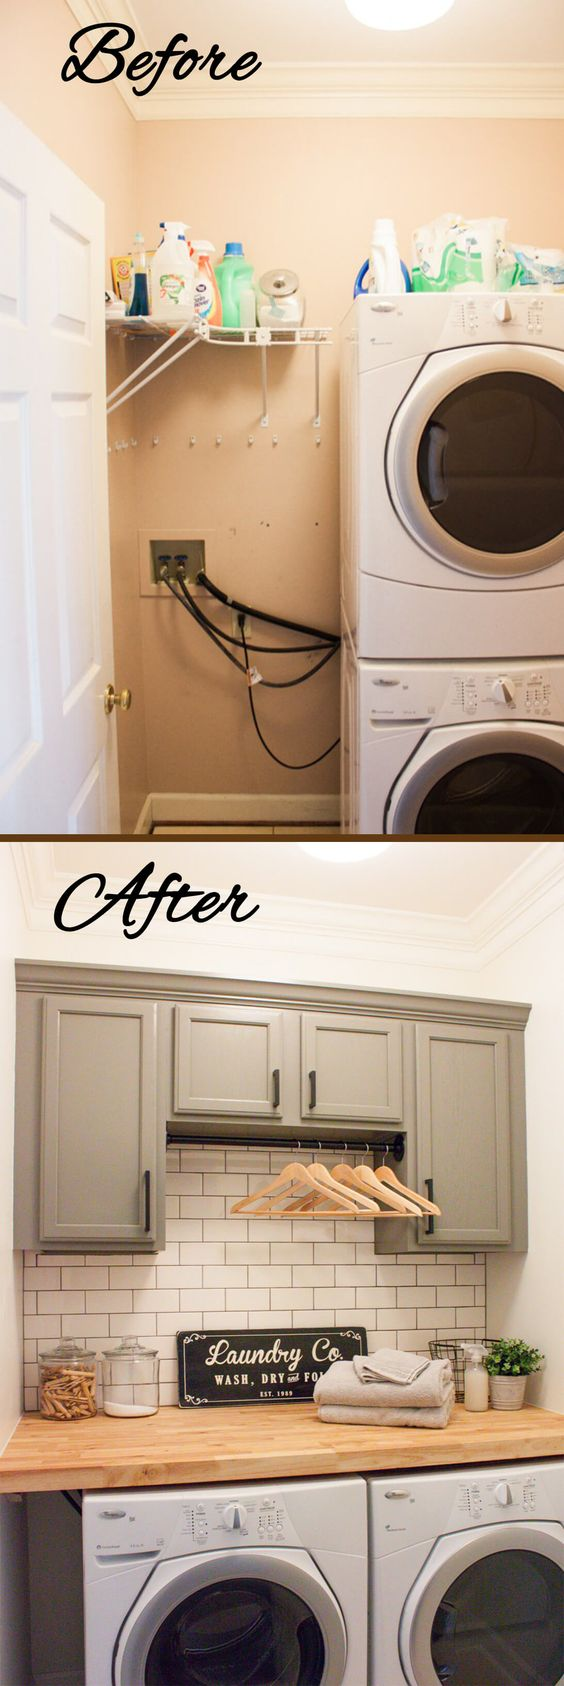 Basement Laundry Room Before And After 22 Amazing Basement La...